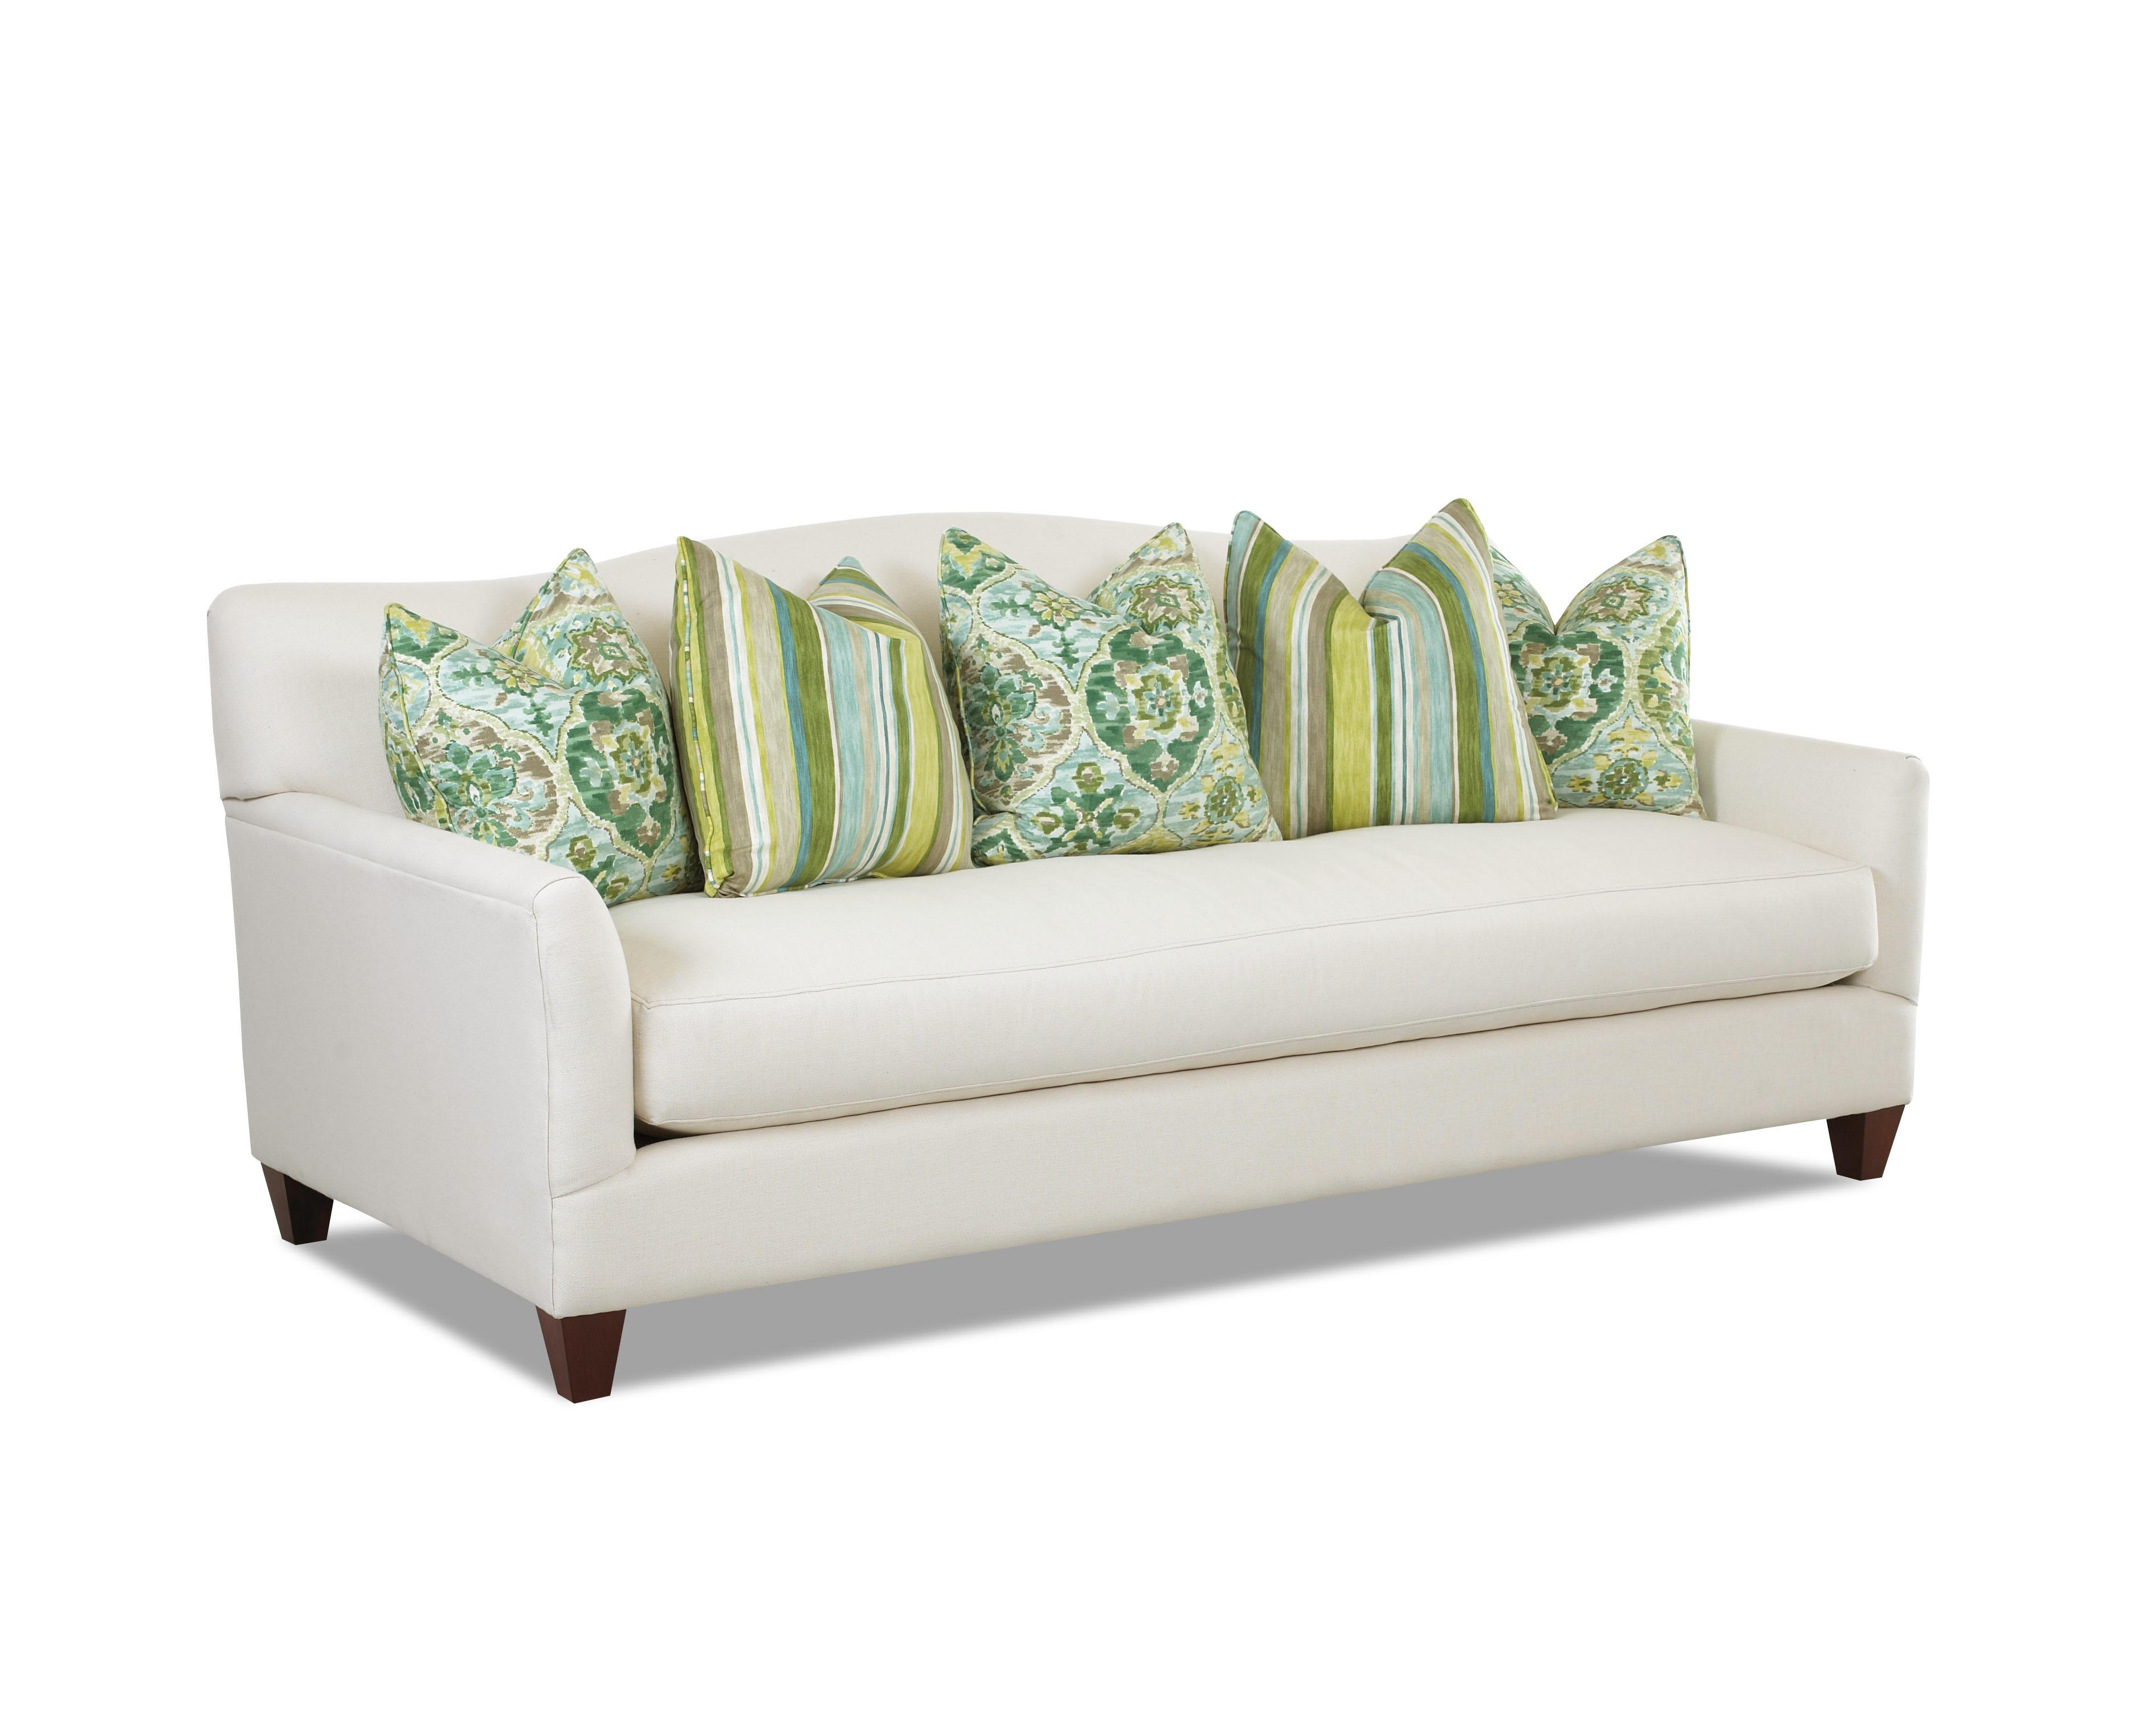 Contemporary Stationary Sofa With Bench Seat Cushion And